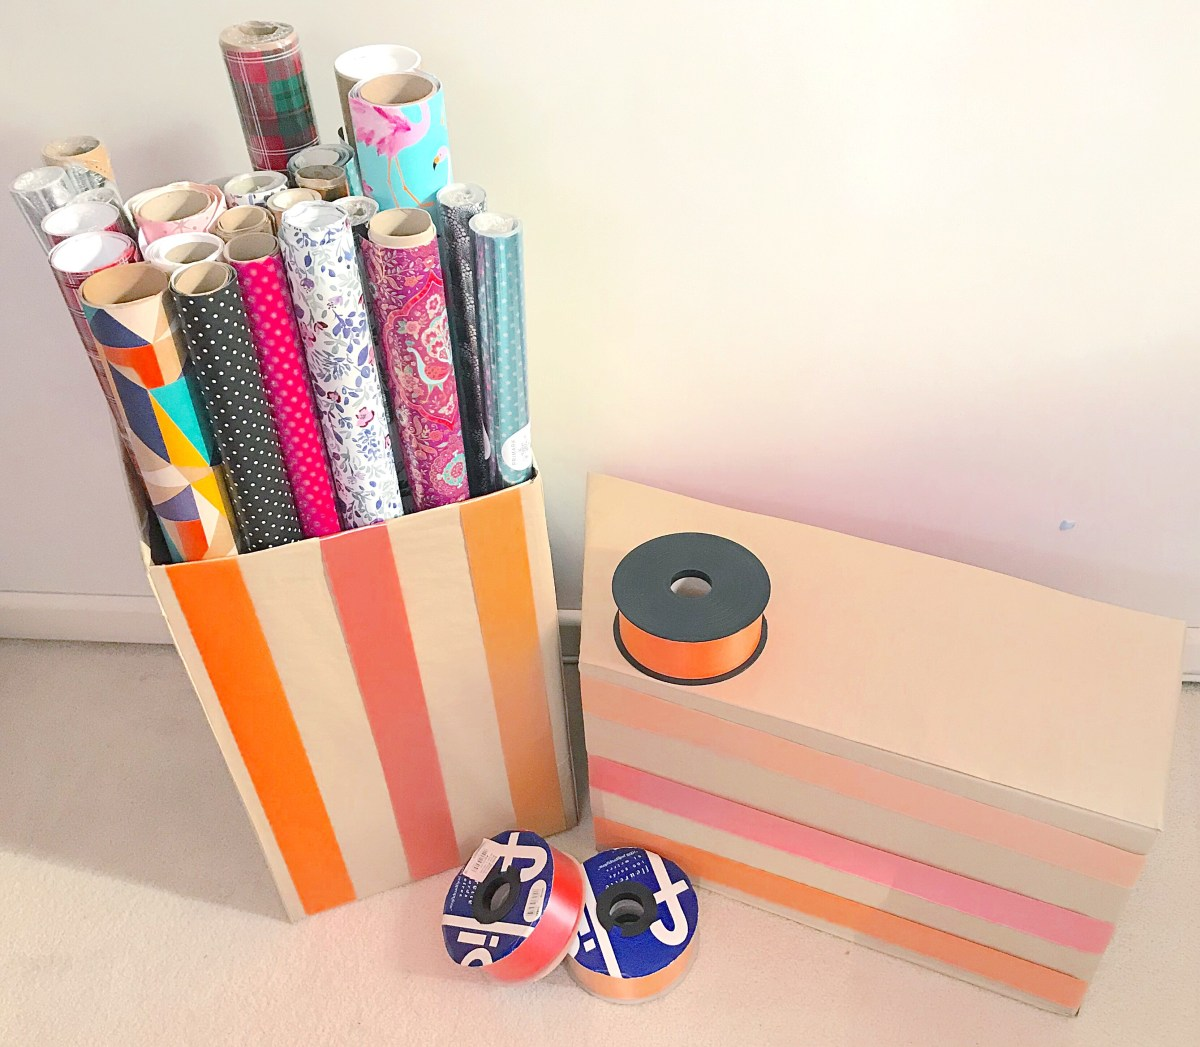 Up-cycled gift wrapping paper storage boxes 1